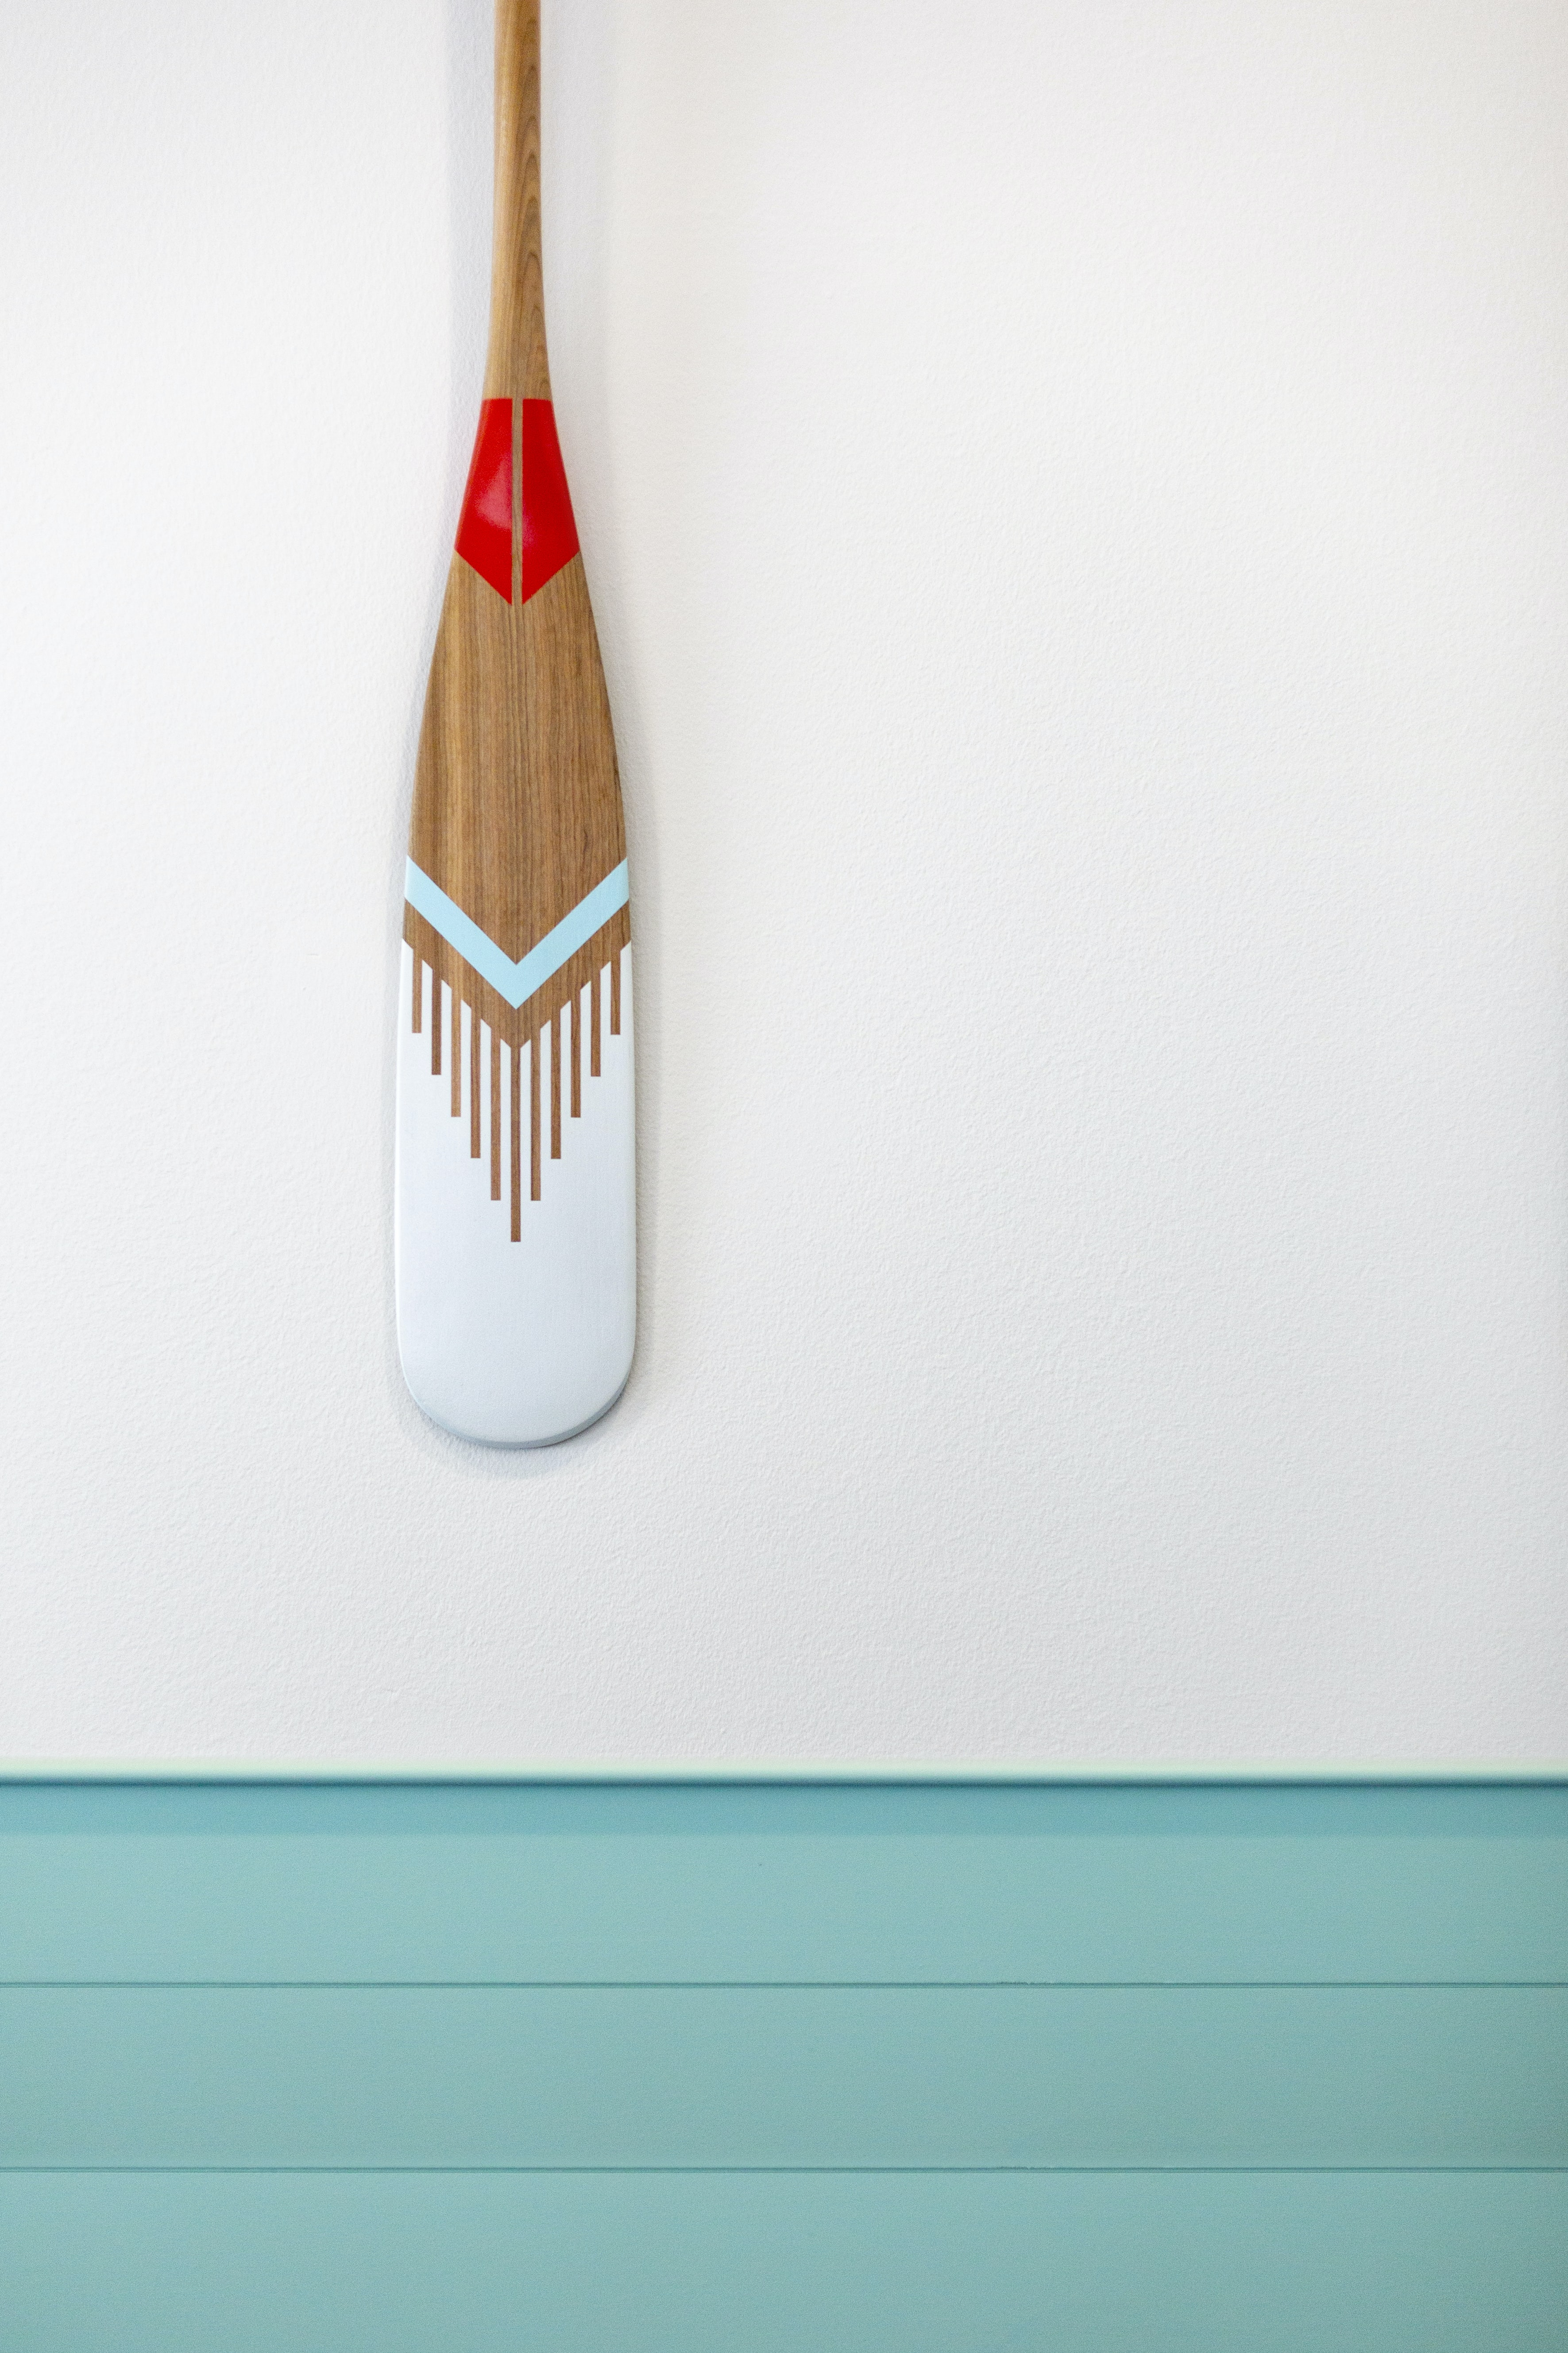 brown, teal, and gray wooden paddle on gray wall